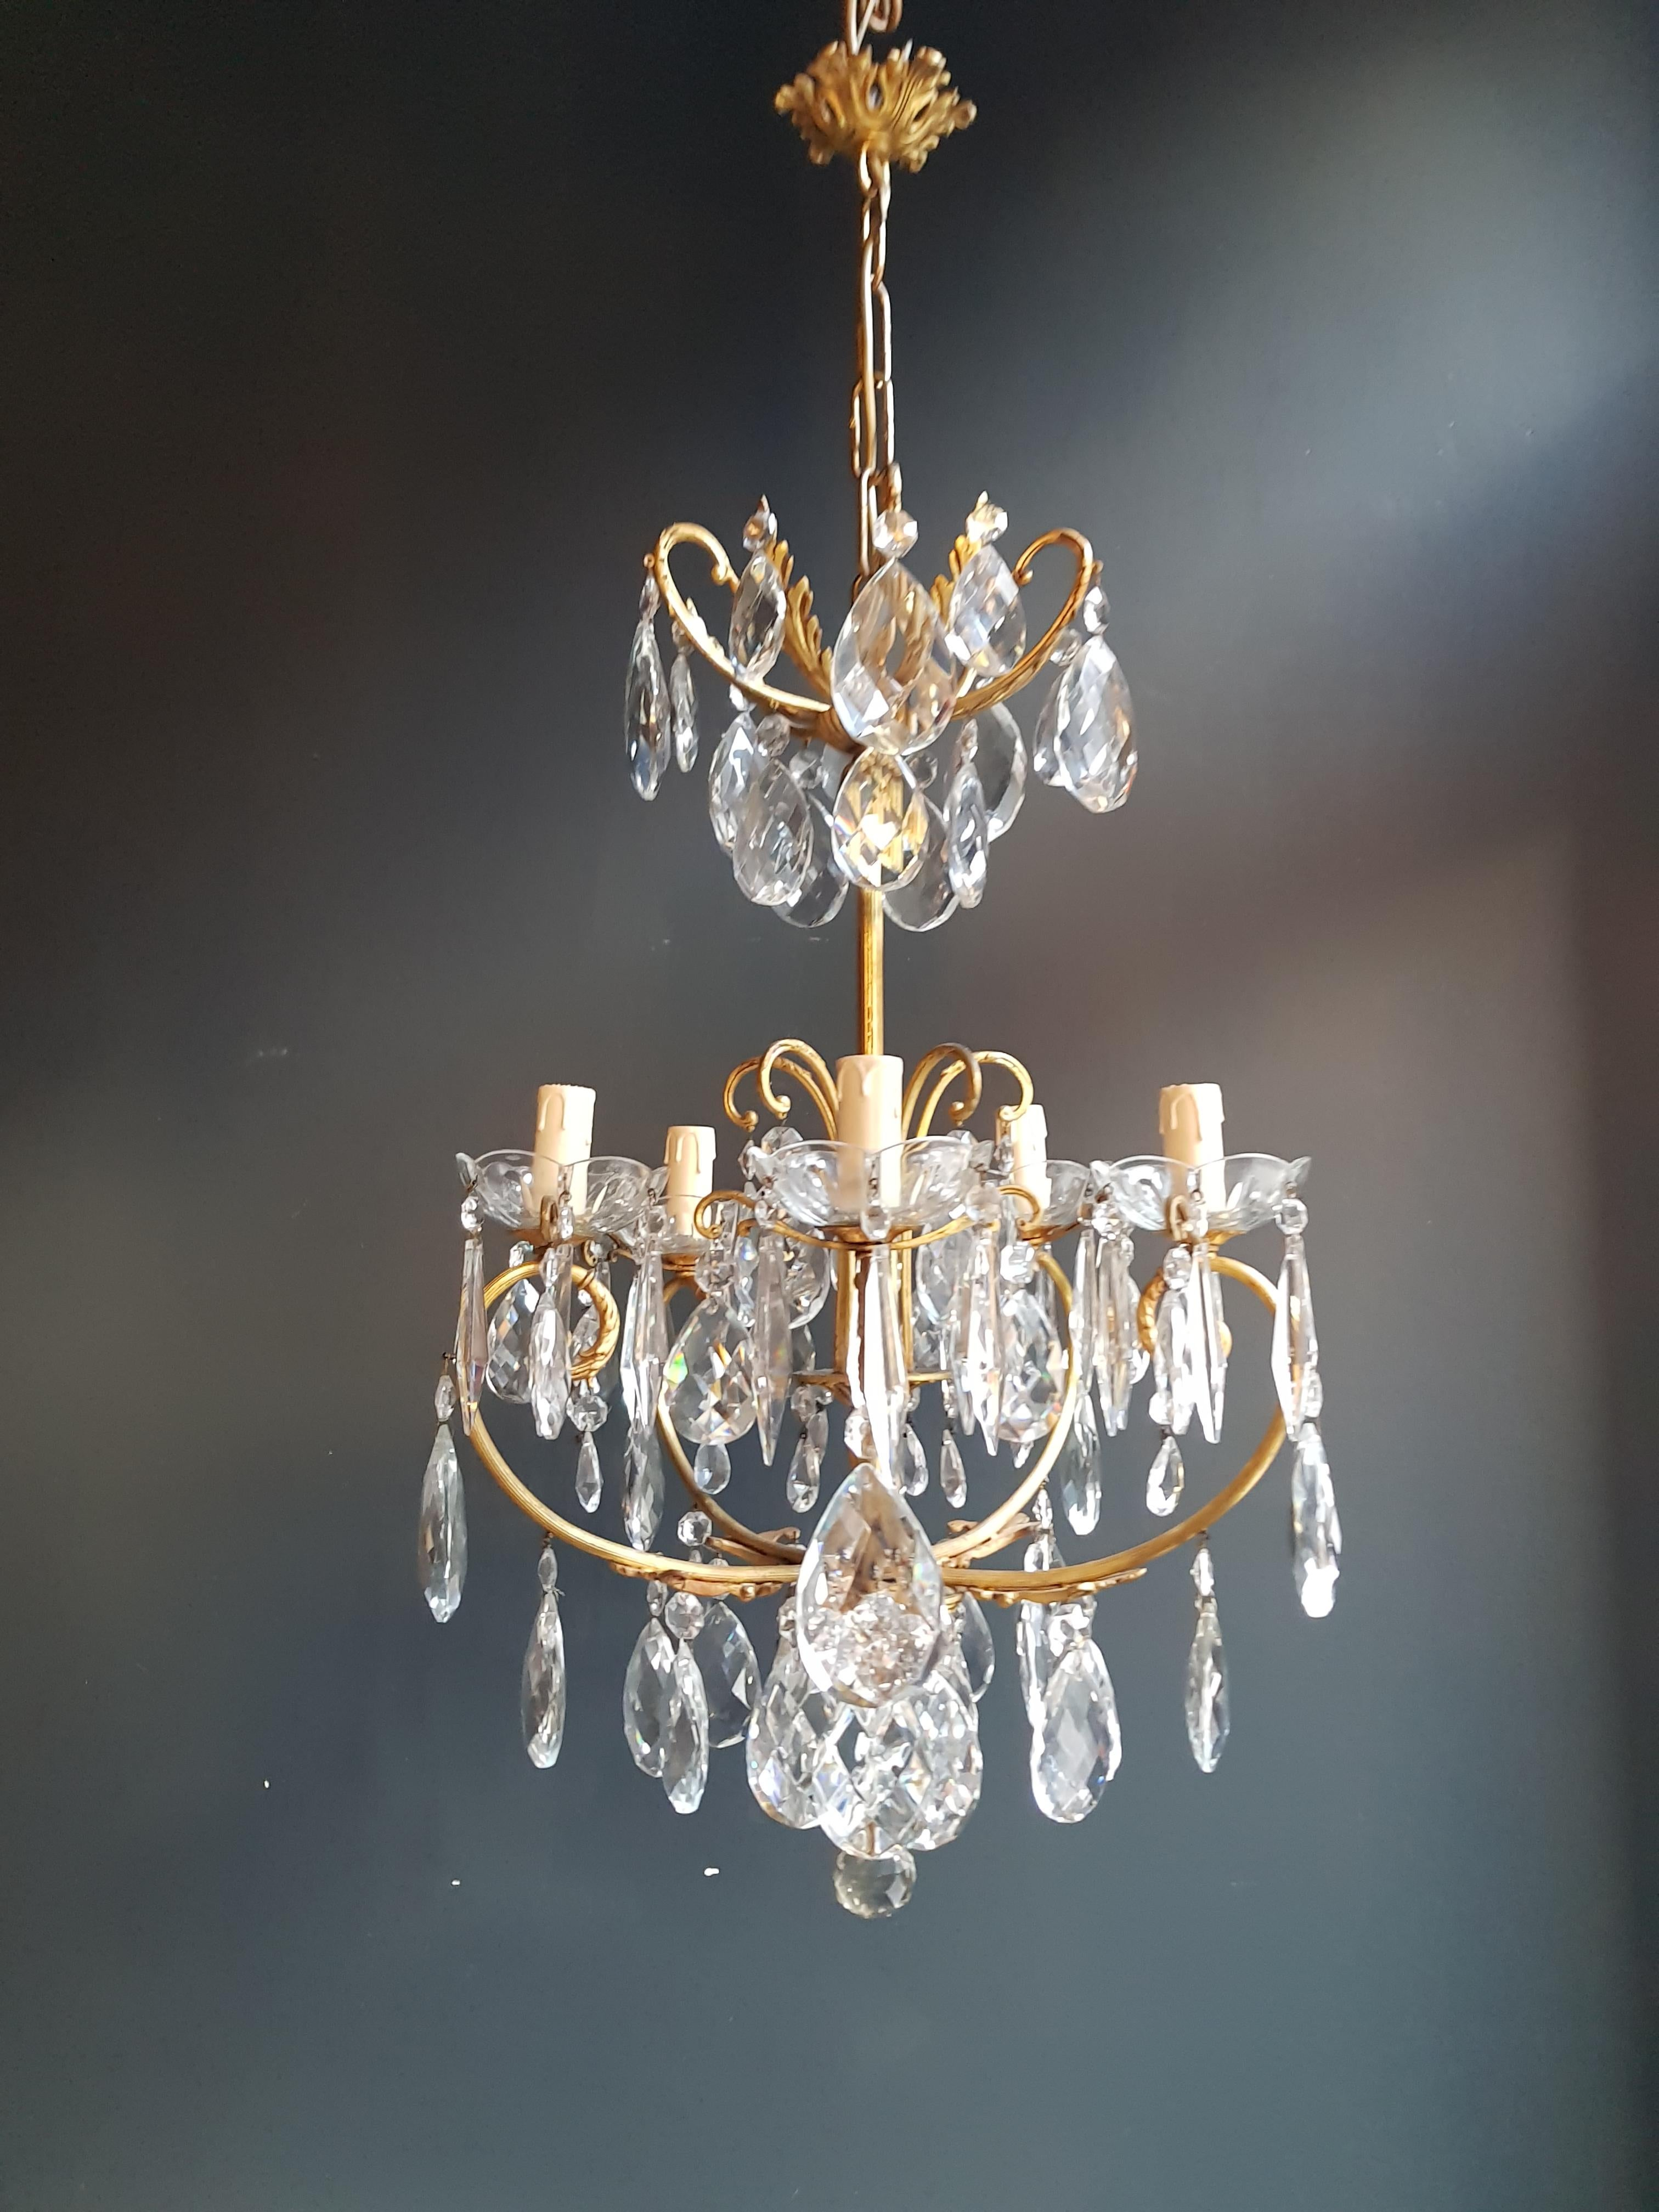 Lustre Cage Brass Cage Crystal Chandelier Antique Ceiling Lamp Lustre Art Nouveau